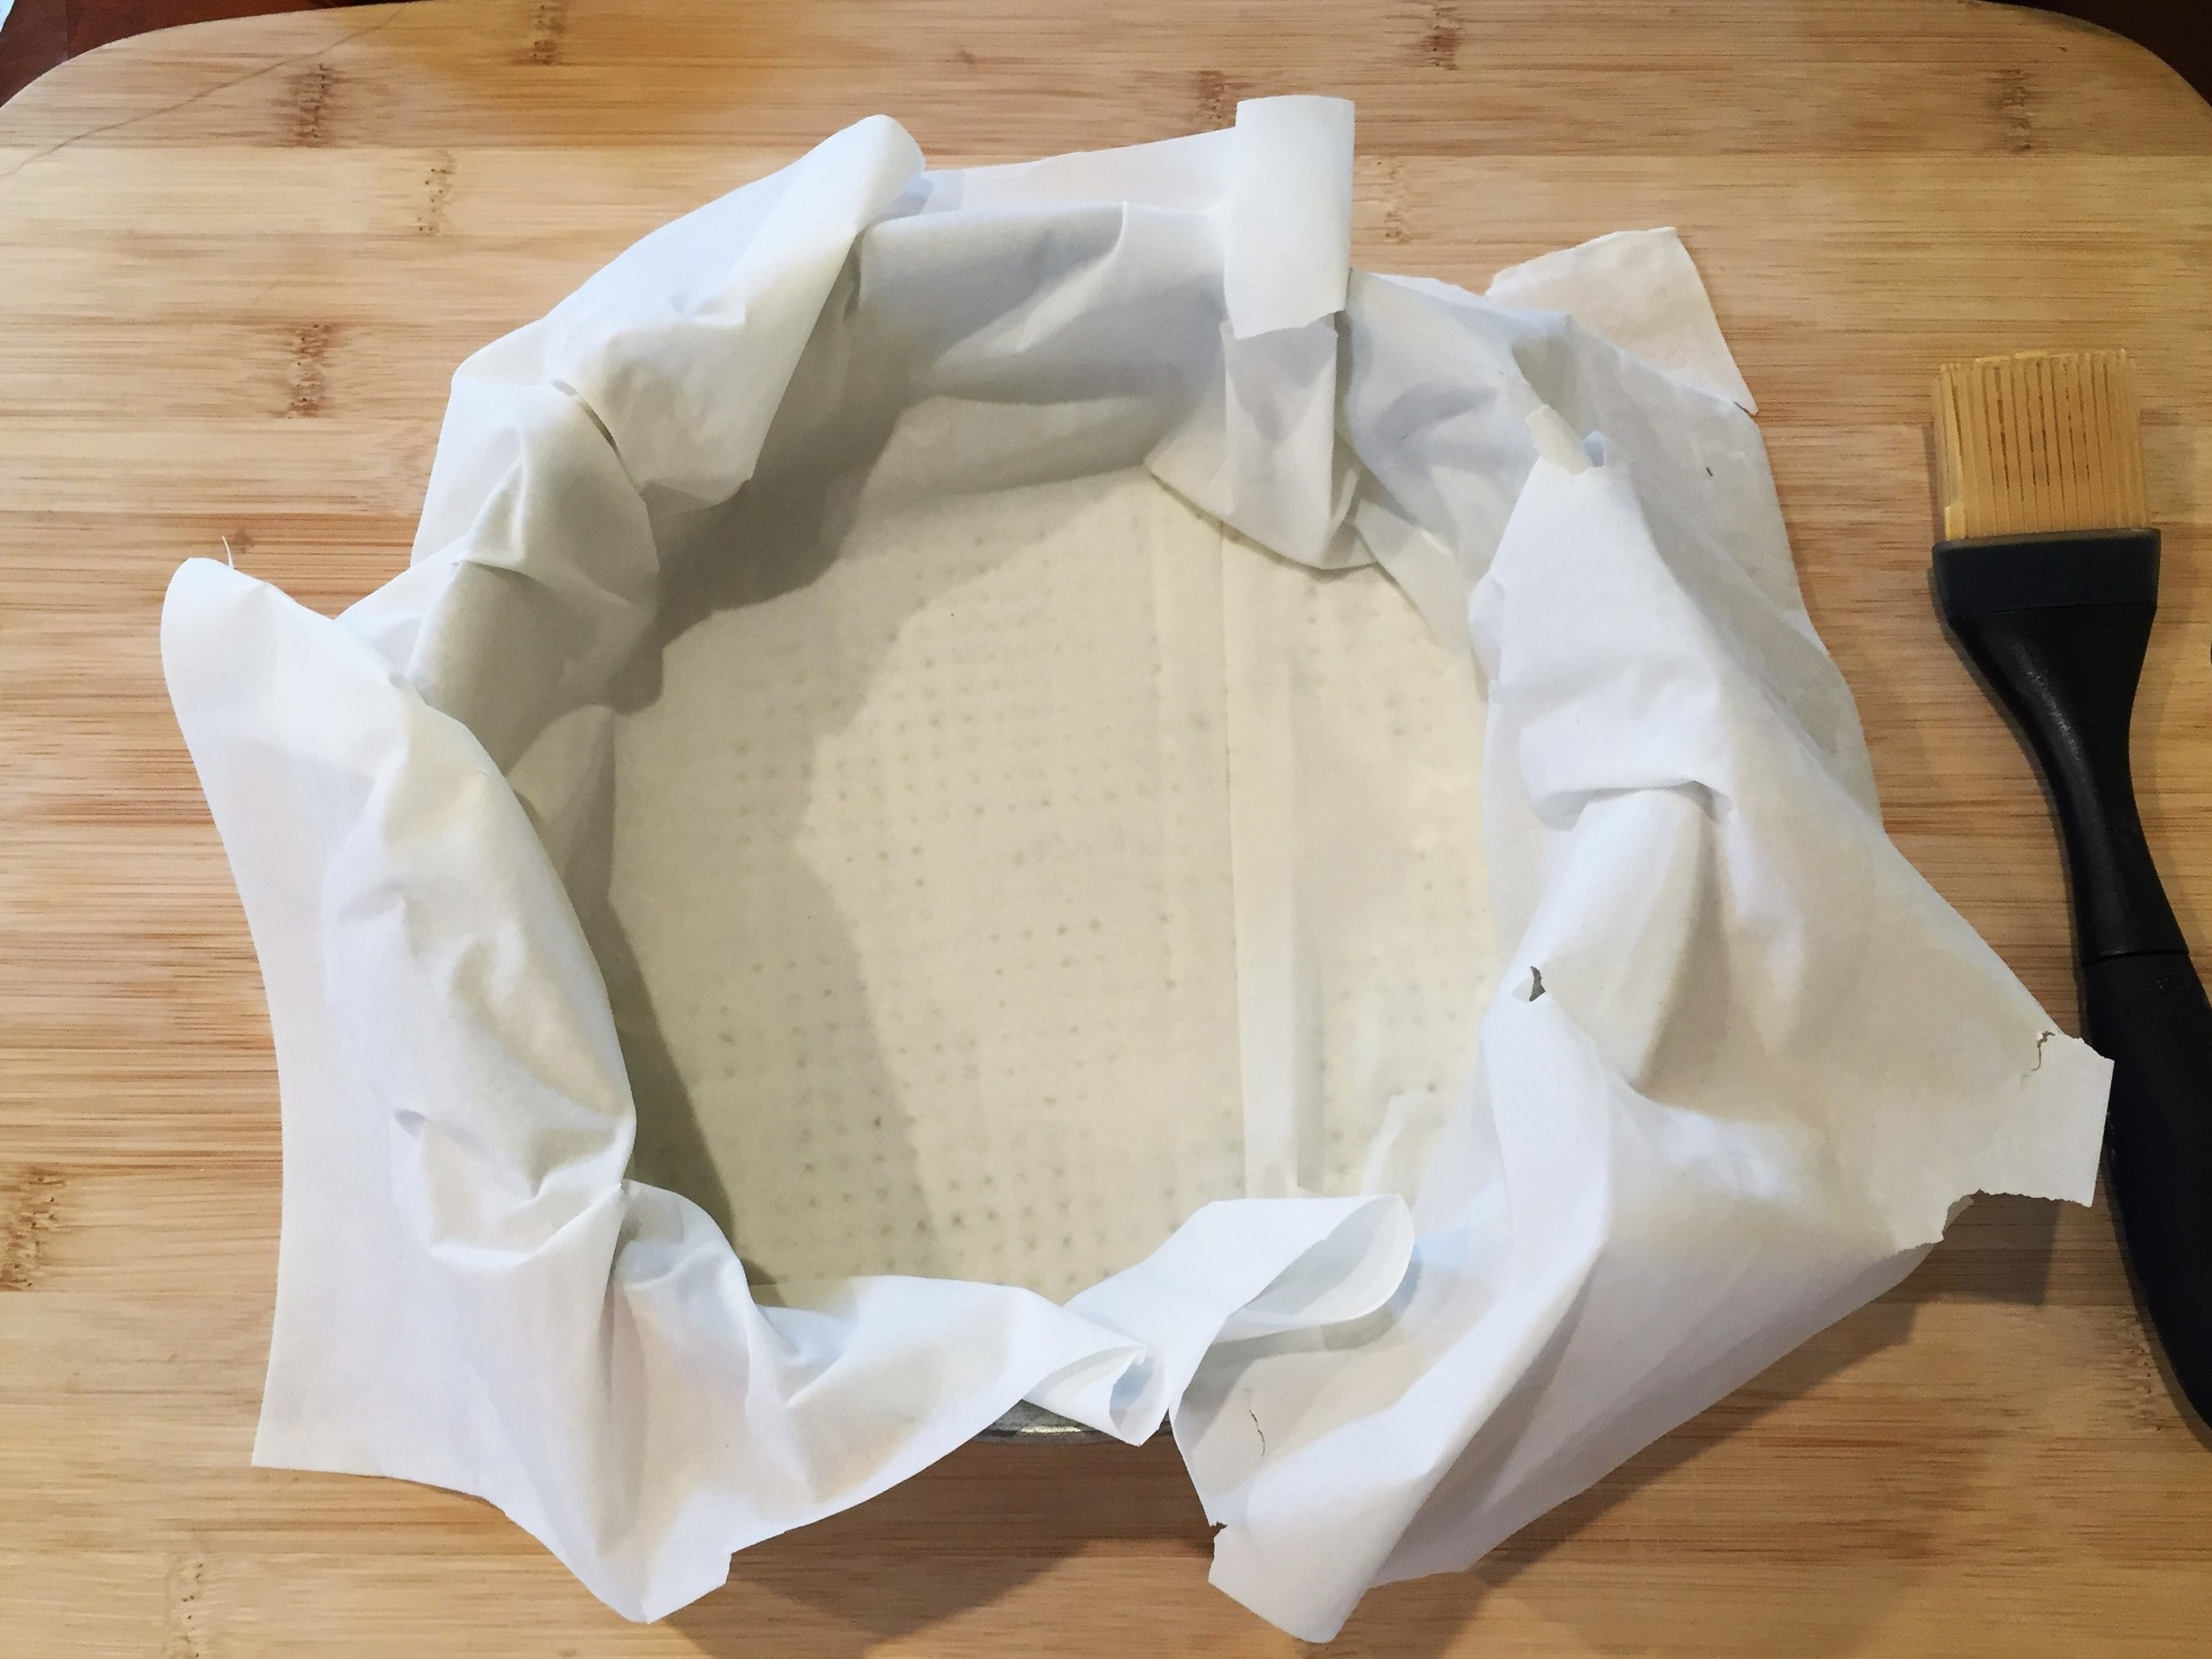 One sheet of phyllo dough lining our springform pan - note that you can see the bottom of the pan through the dough.